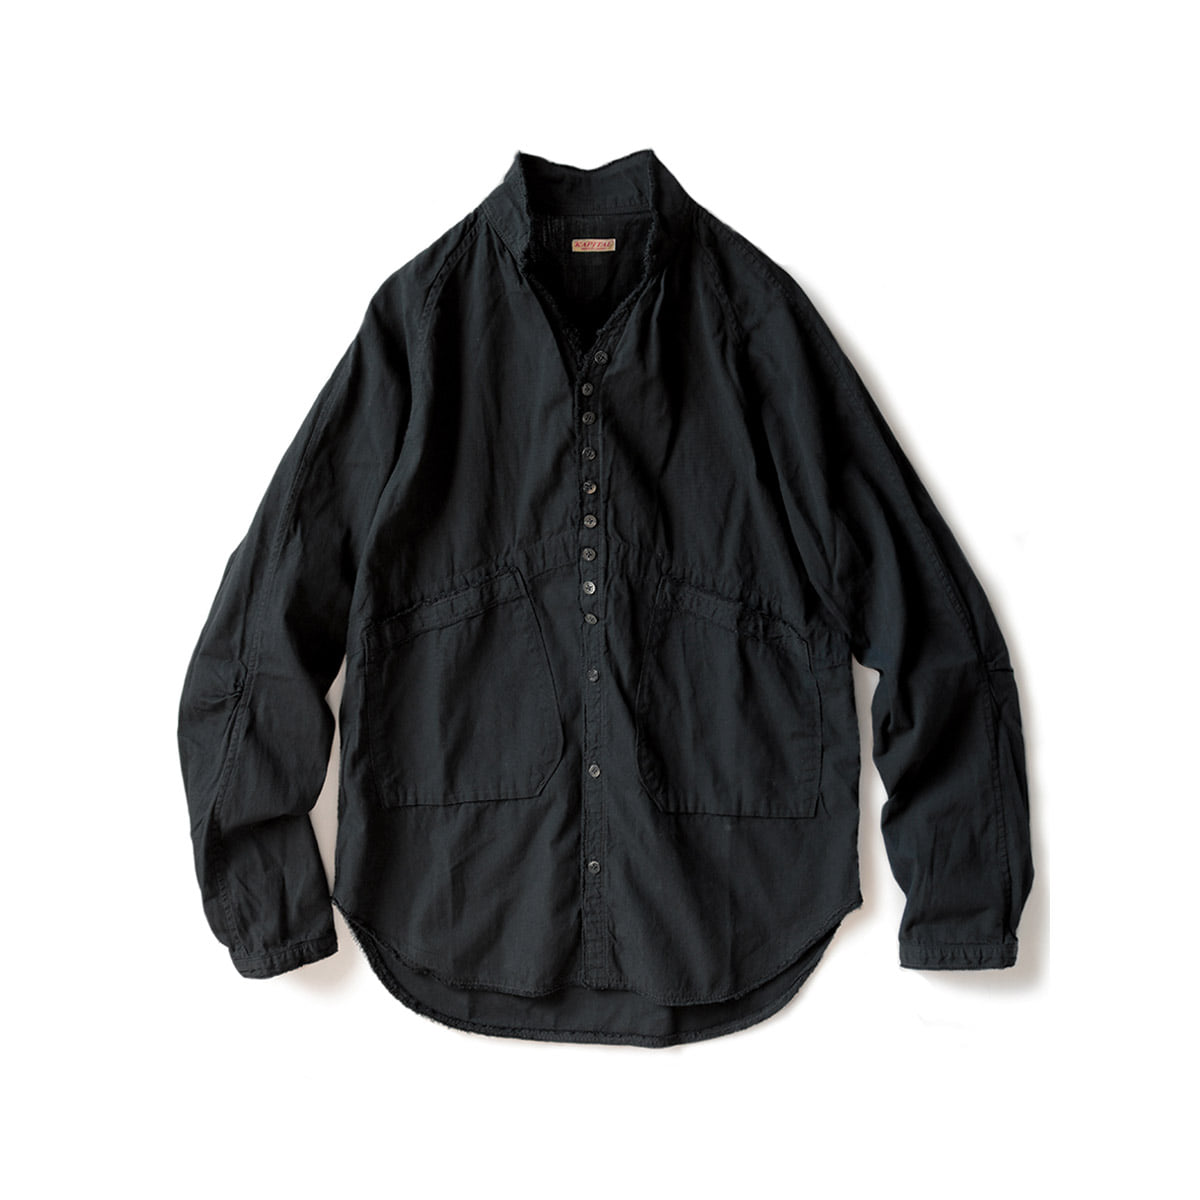 [KAPITAL] BLACK BROAD CLOTH BASQUIAT SHIRT 'BLK'